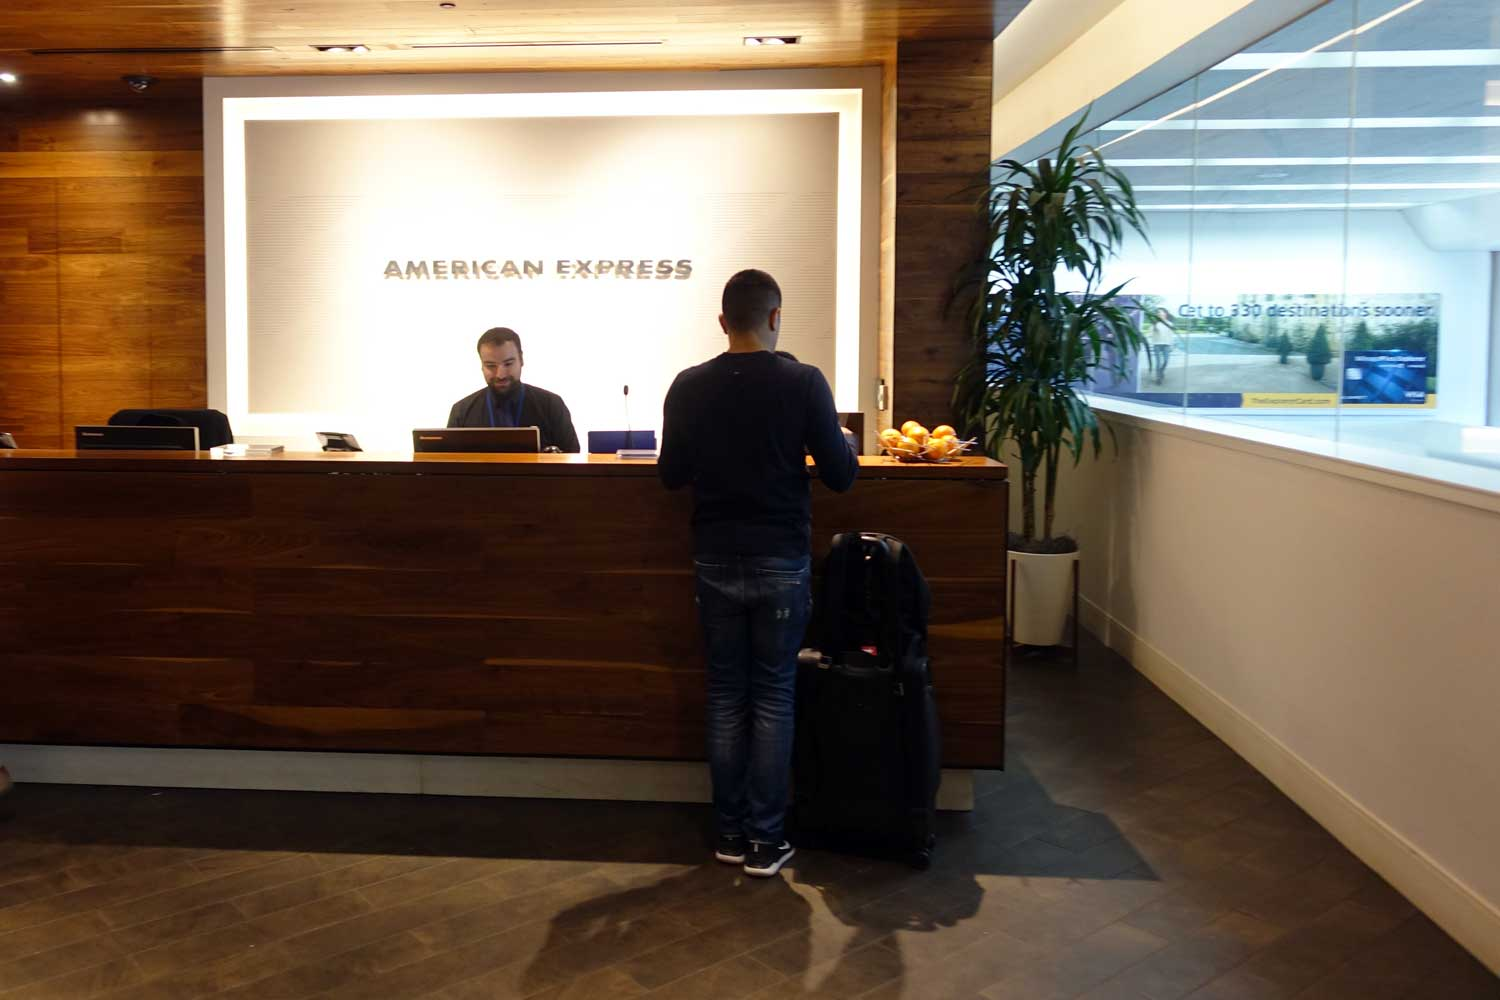 Centurion Lounge SFO check in desk